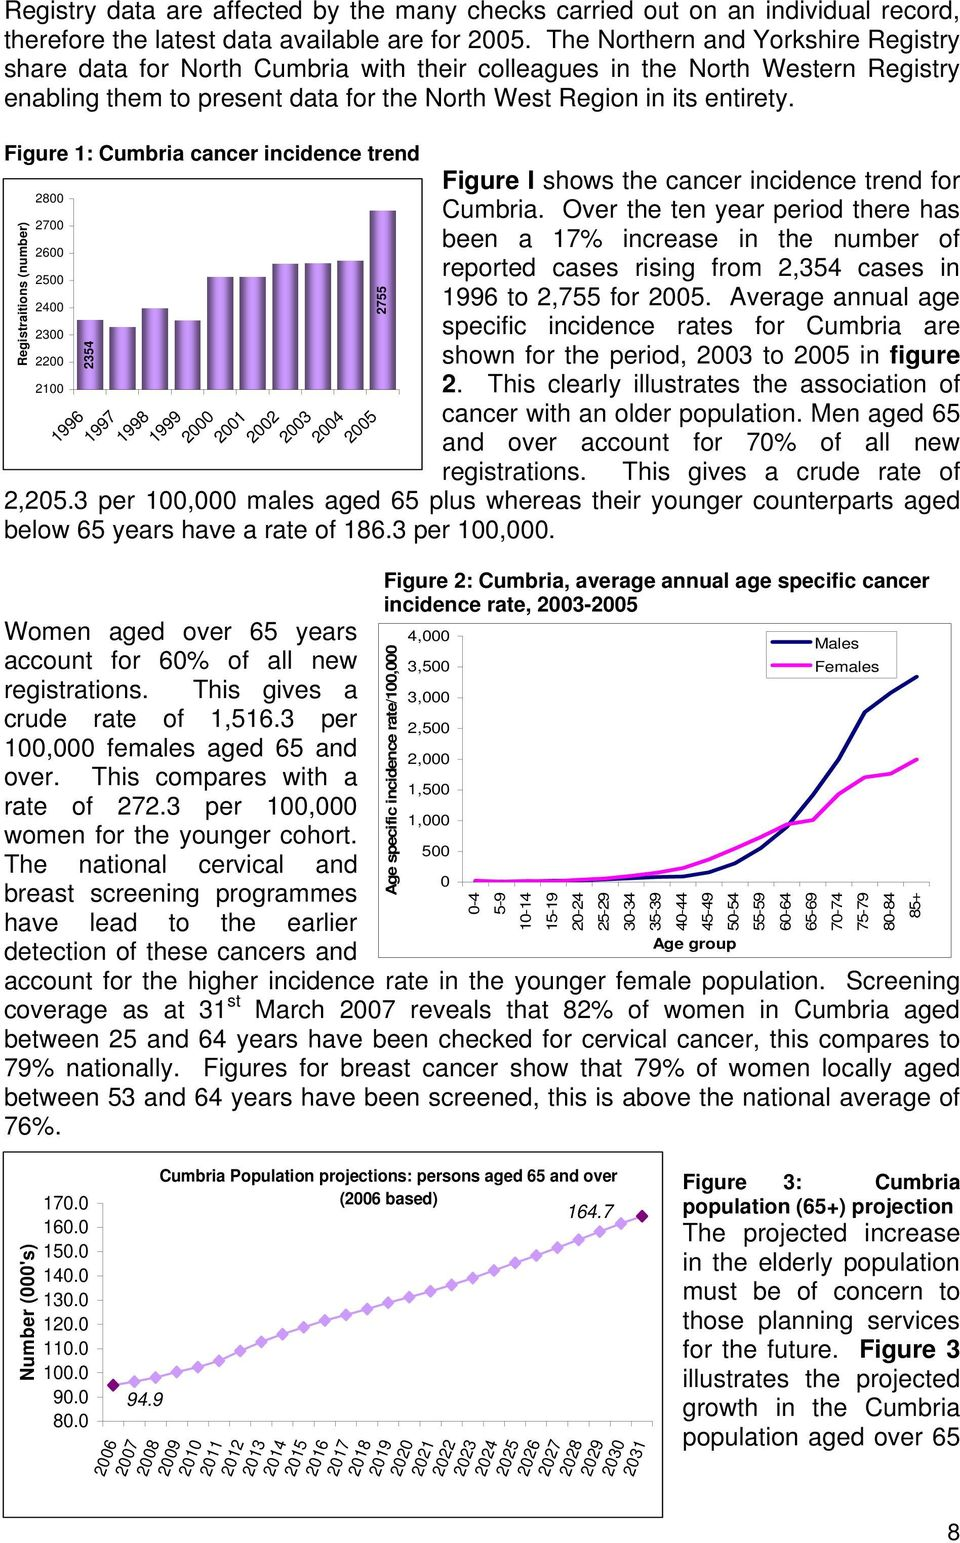 Figure 1: Cumbria cancer incidence trend Registraitions (number) 2800 2700 2600 2500 2400 2300 2200 2100 2354 1996 1997 1998 1999 2755 2000 2001 2002 2003 2004 2005 Figure I shows the cancer